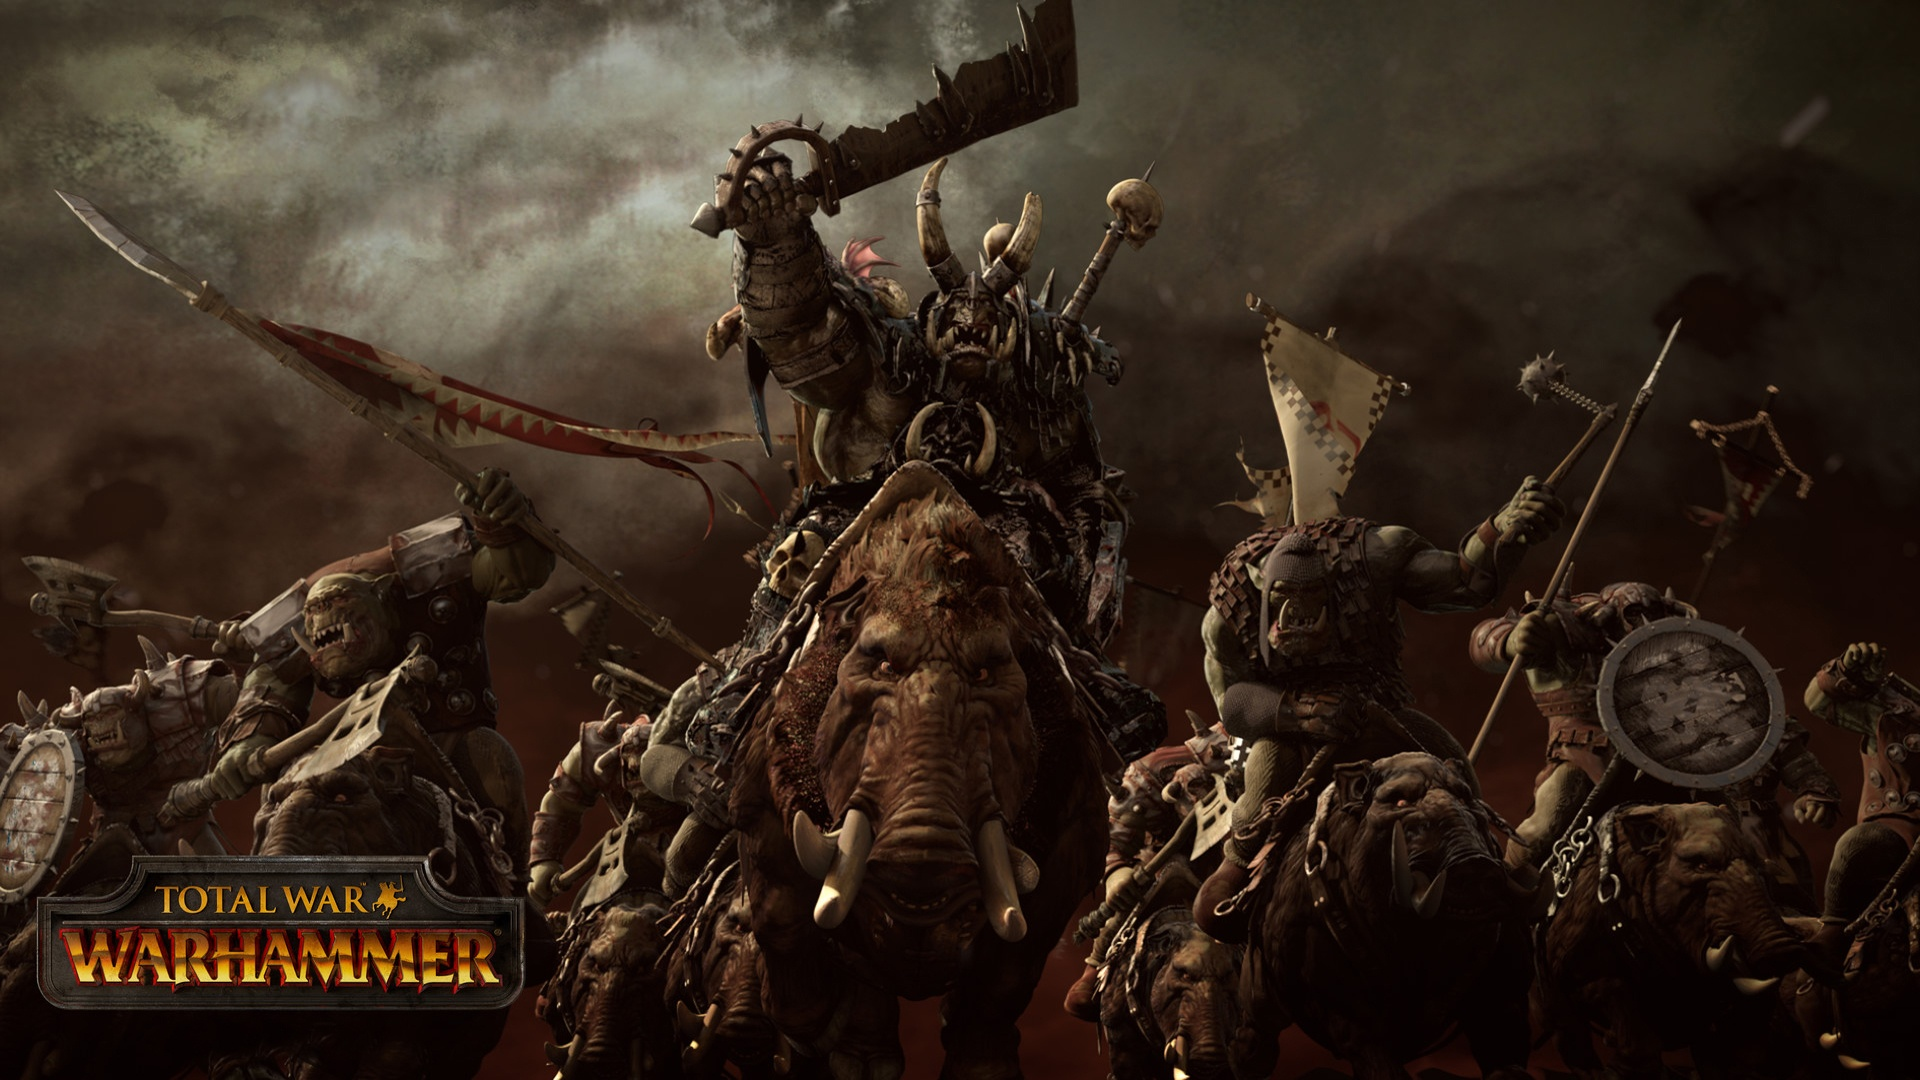 Orcs Total War Warhammer Hd Games 4k Wallpapers Images